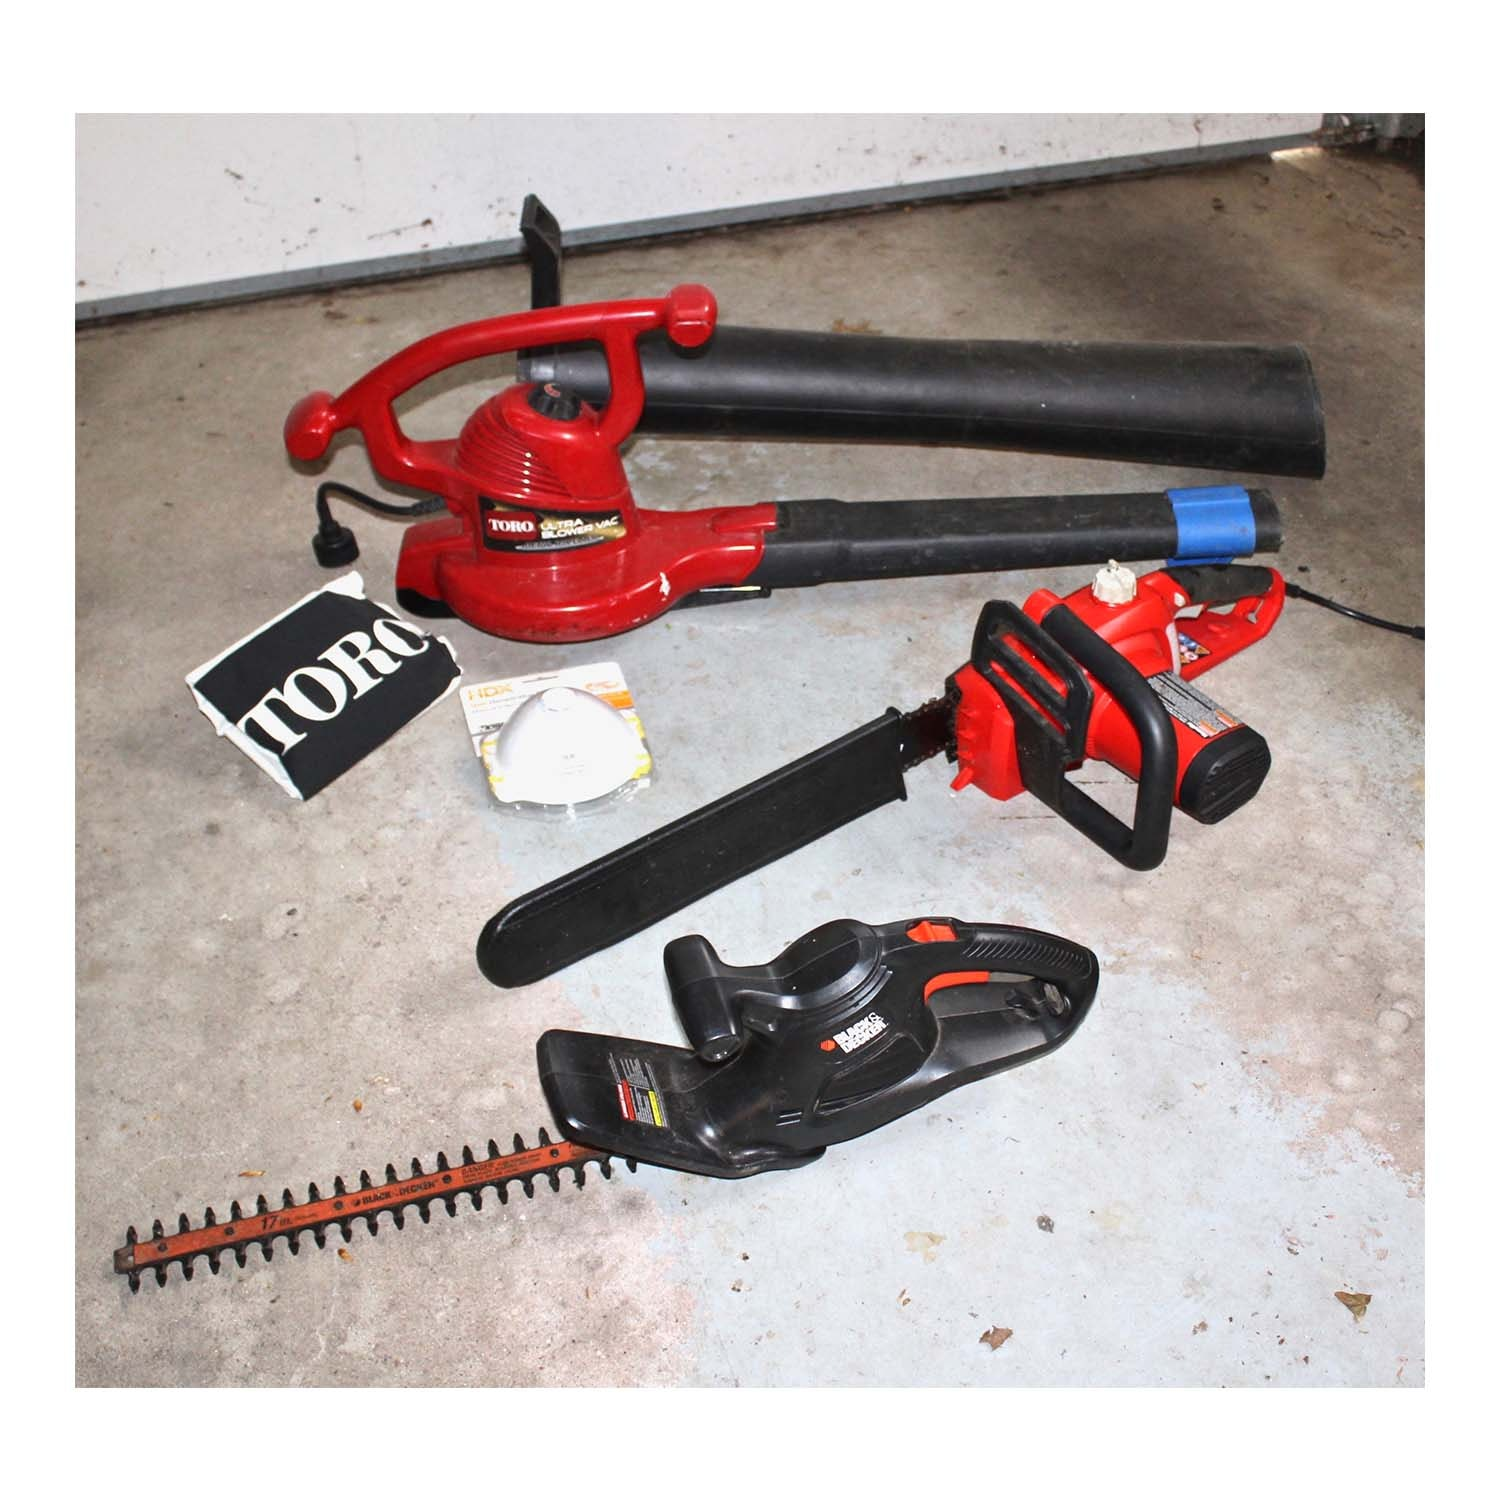 Blower, Hedge Trimmer, and Chainsaw Including Black and Decker